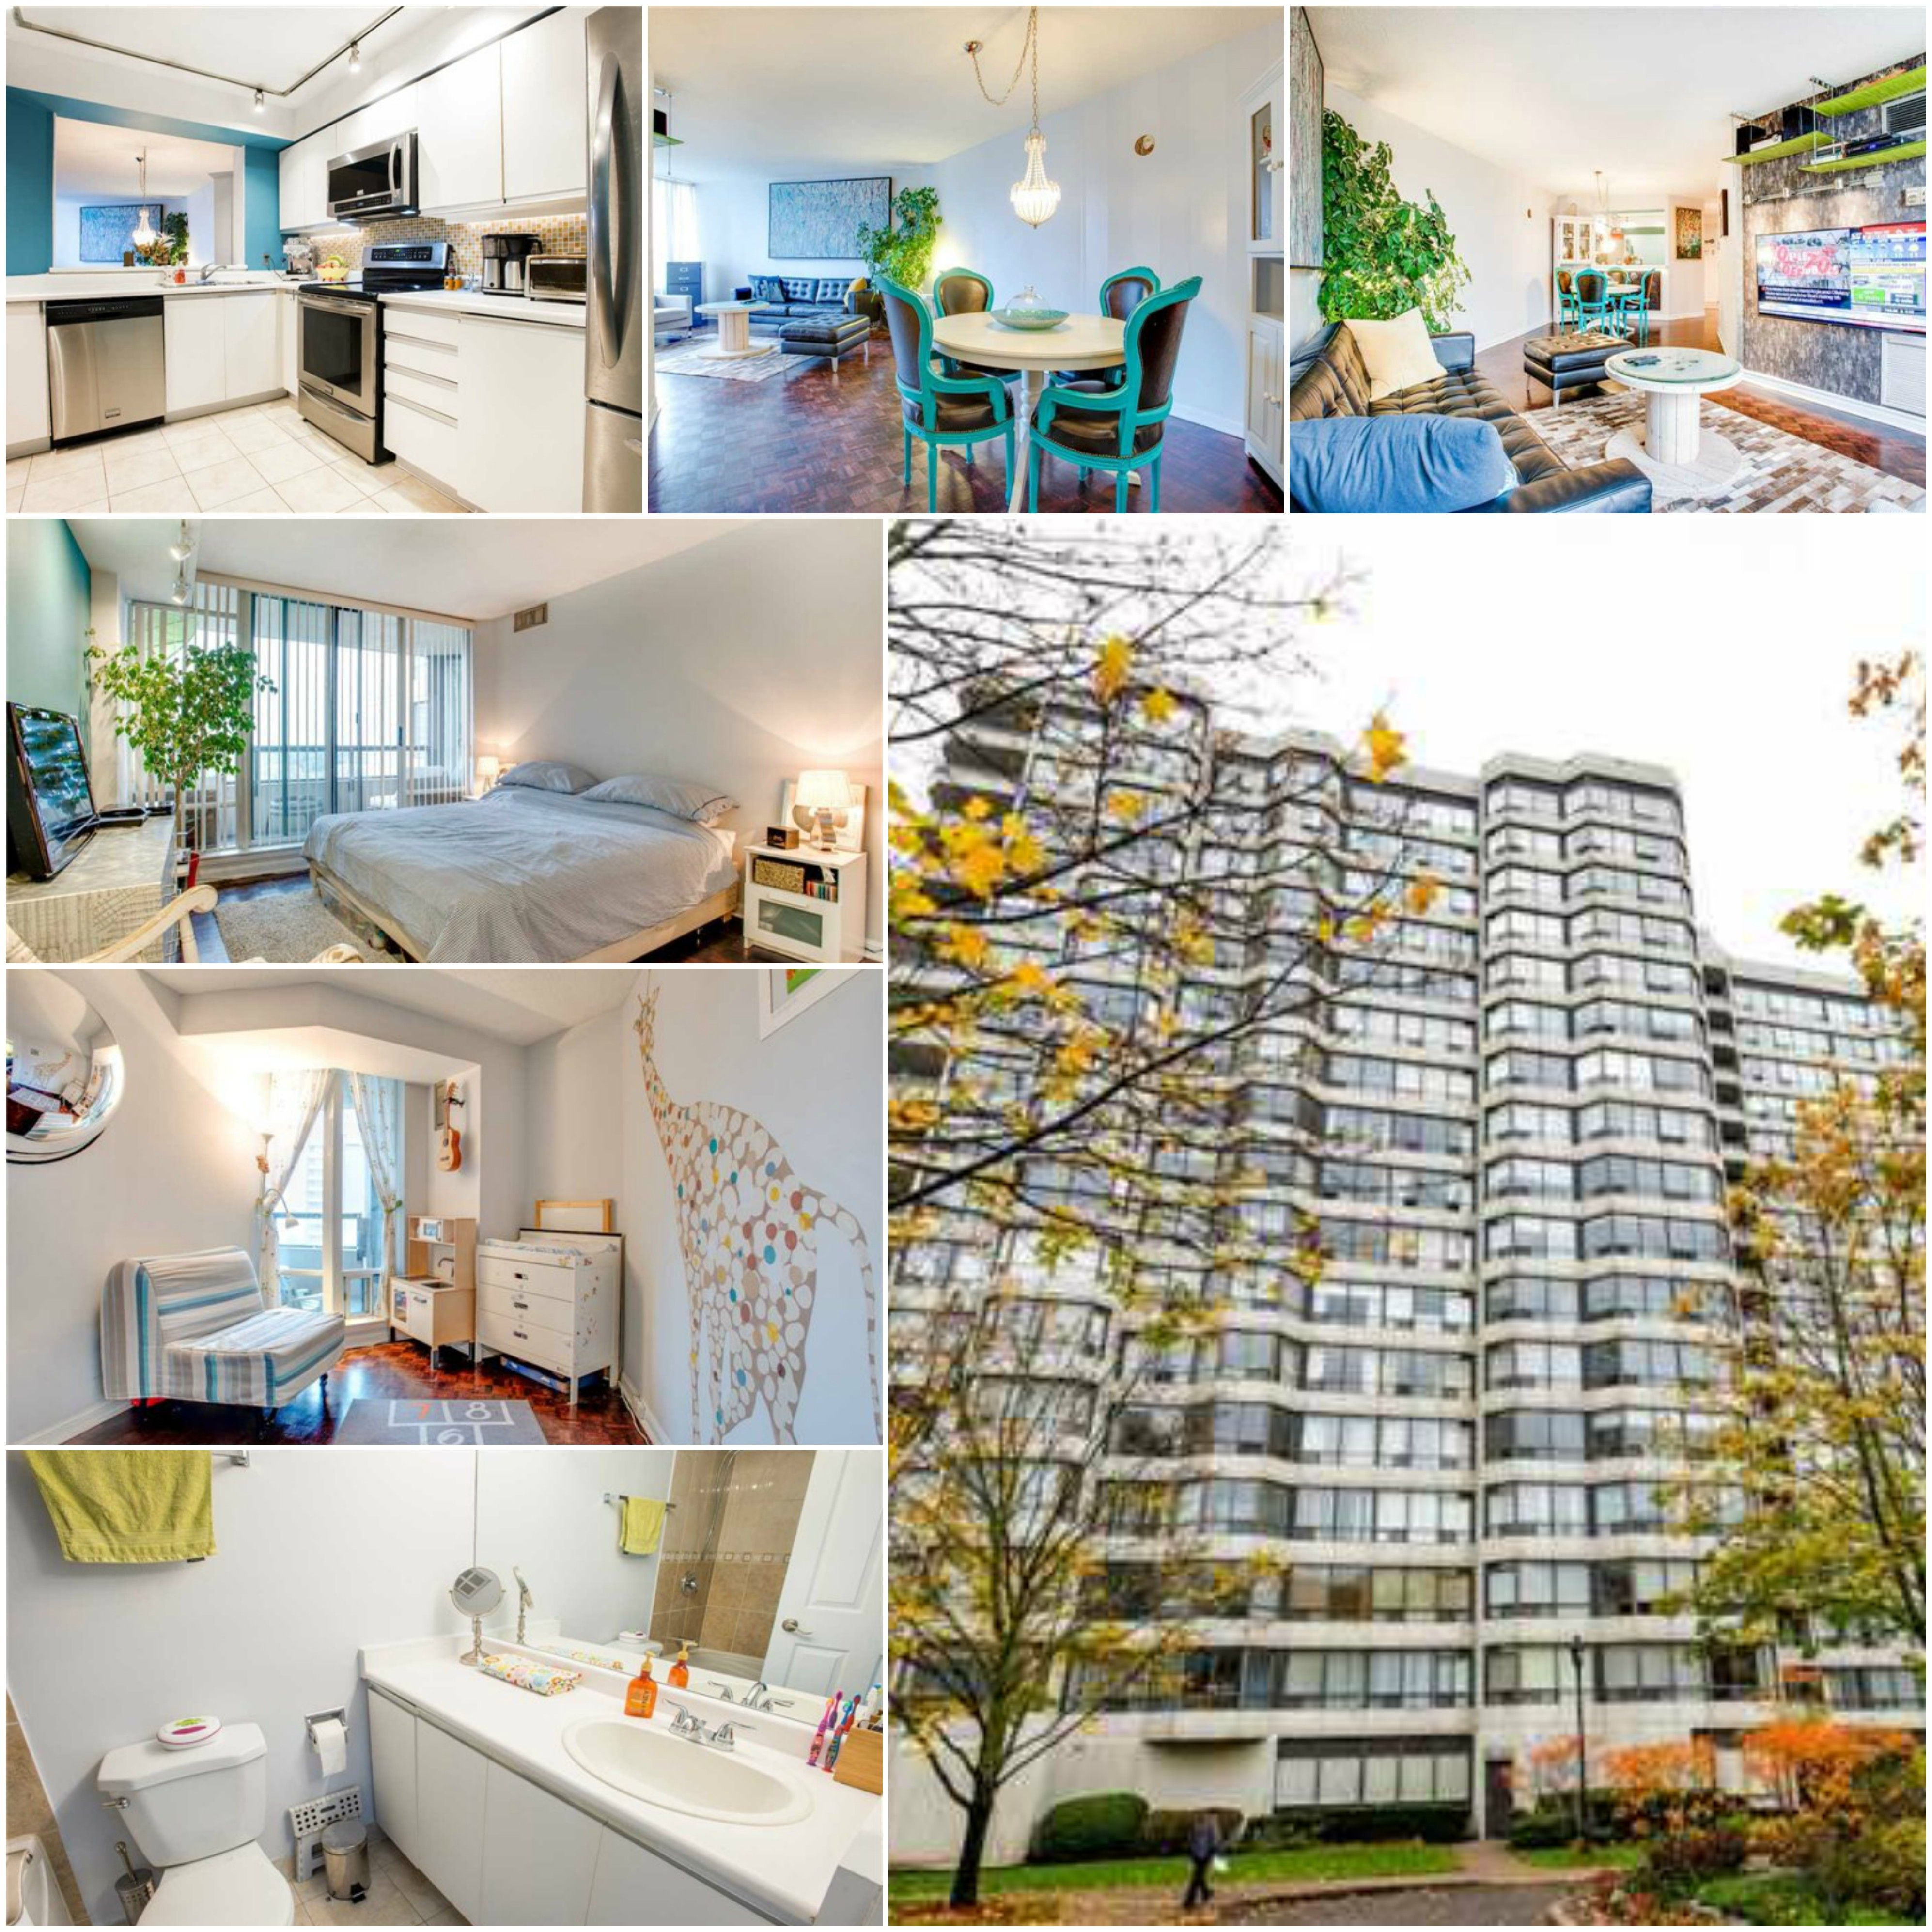 New Mls Listing For Sale Book Your Showing Today Beautiful Condo In Toronto Realestate Searchrealty New Condo Estate Homes Mls Listings